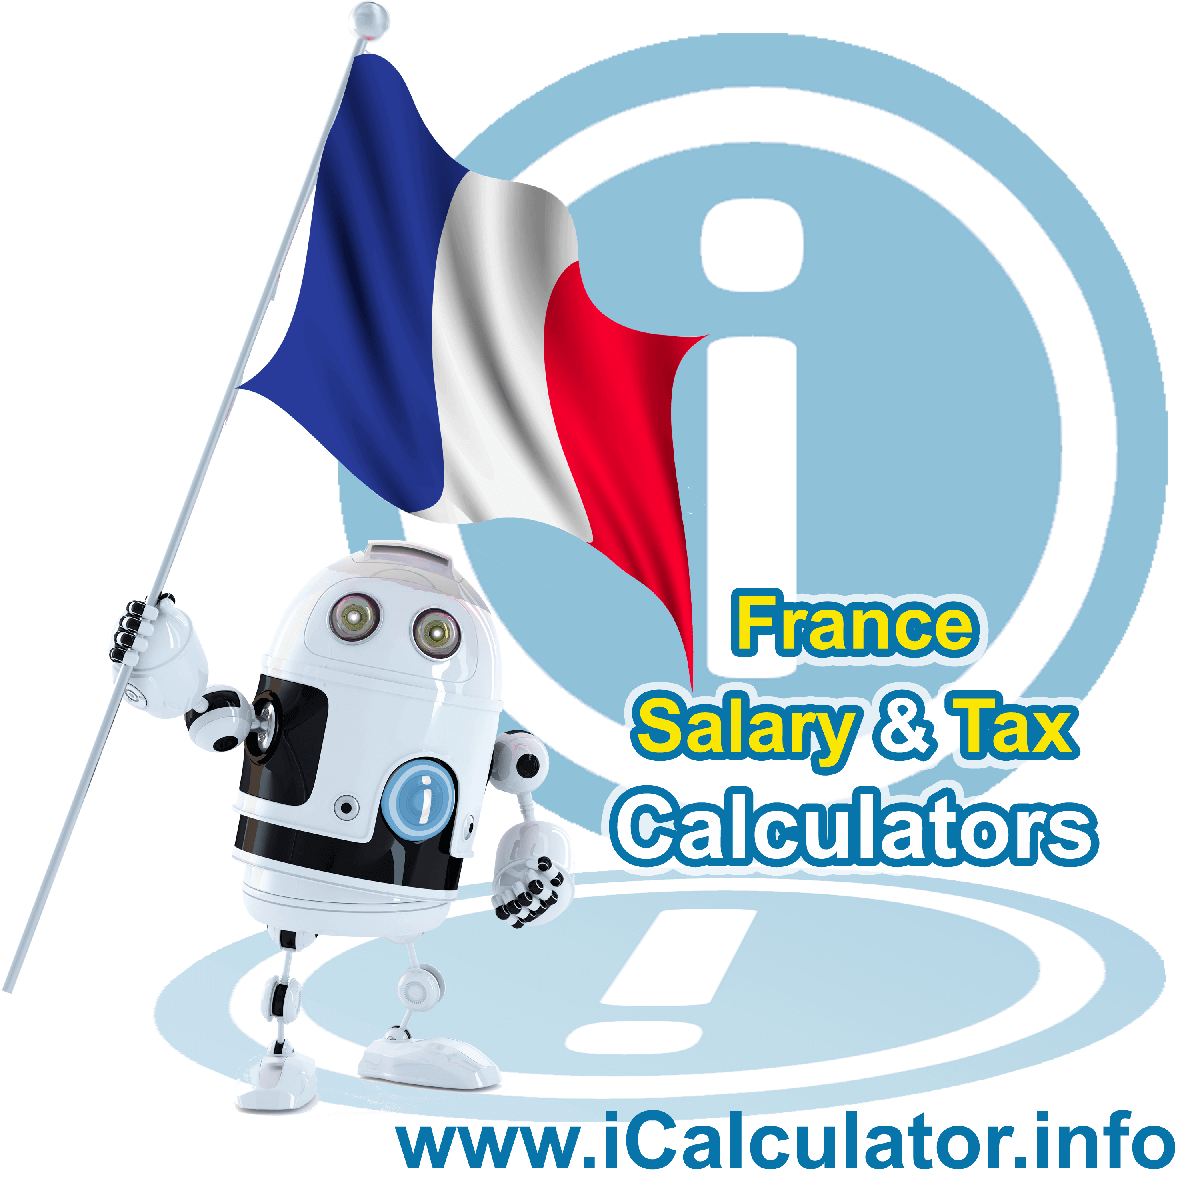 France Wage Calculator. This image shows the France flag and information relating to the tax formula for the France Tax Calculator